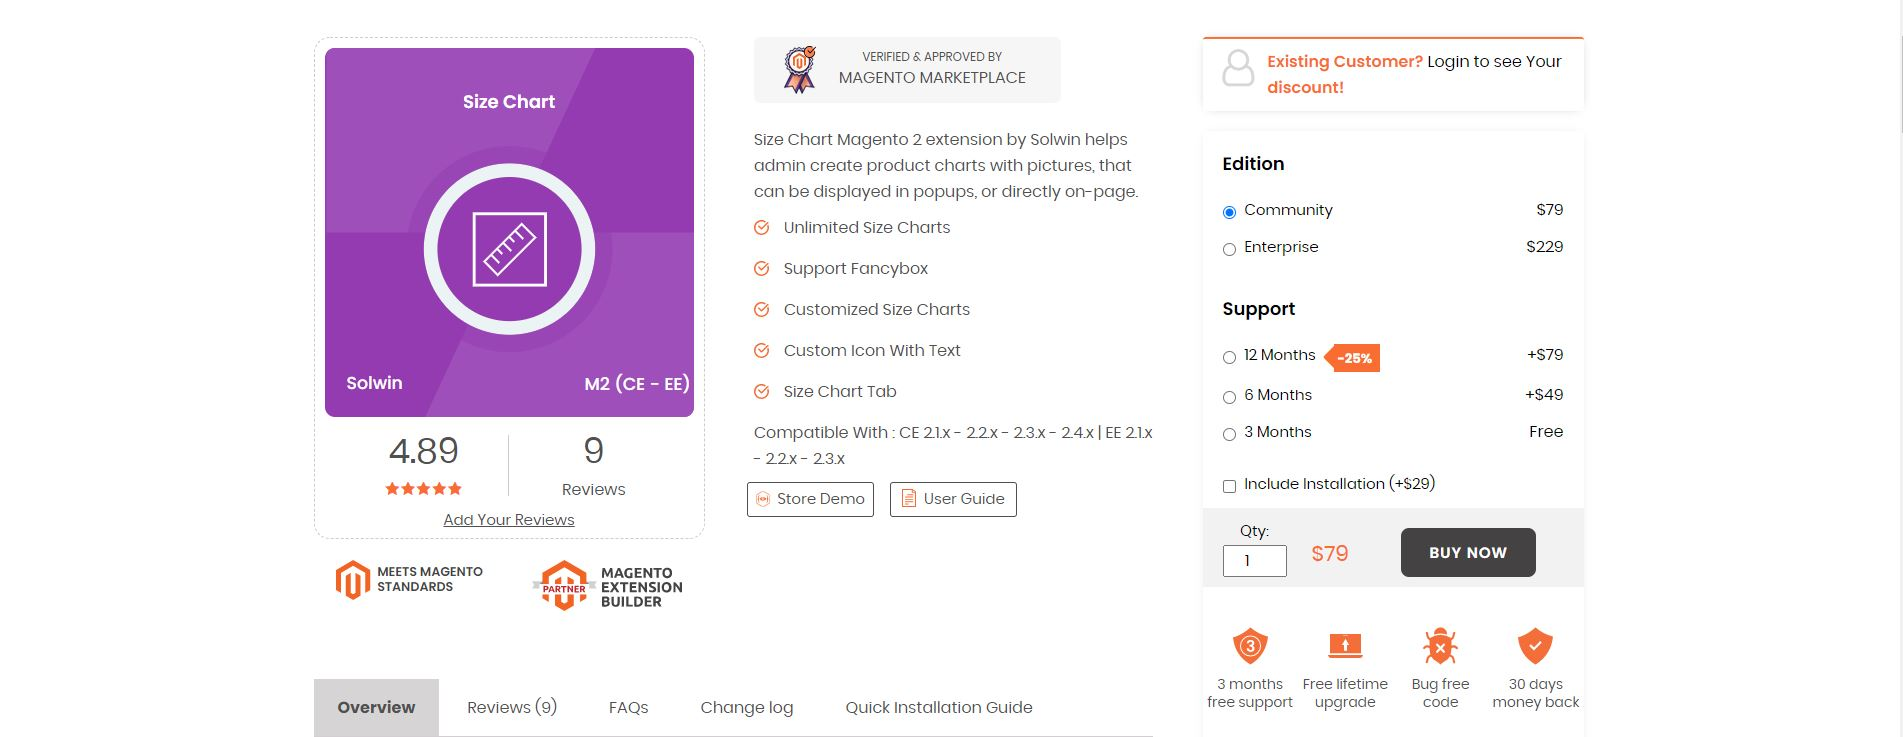 Magento size chart extension